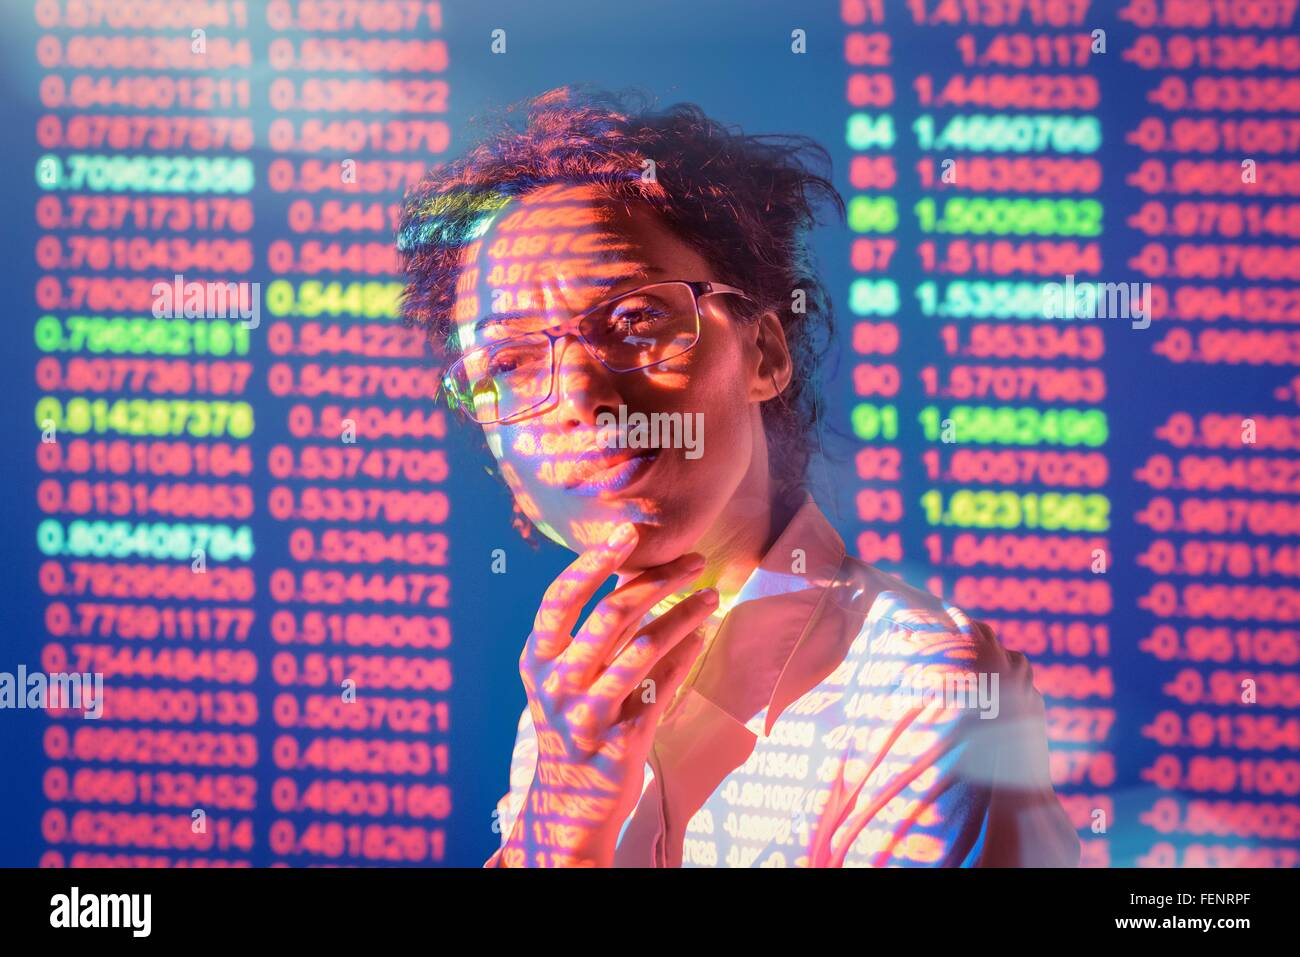 Businesswoman in thought with projected financial numbers - Stock Image